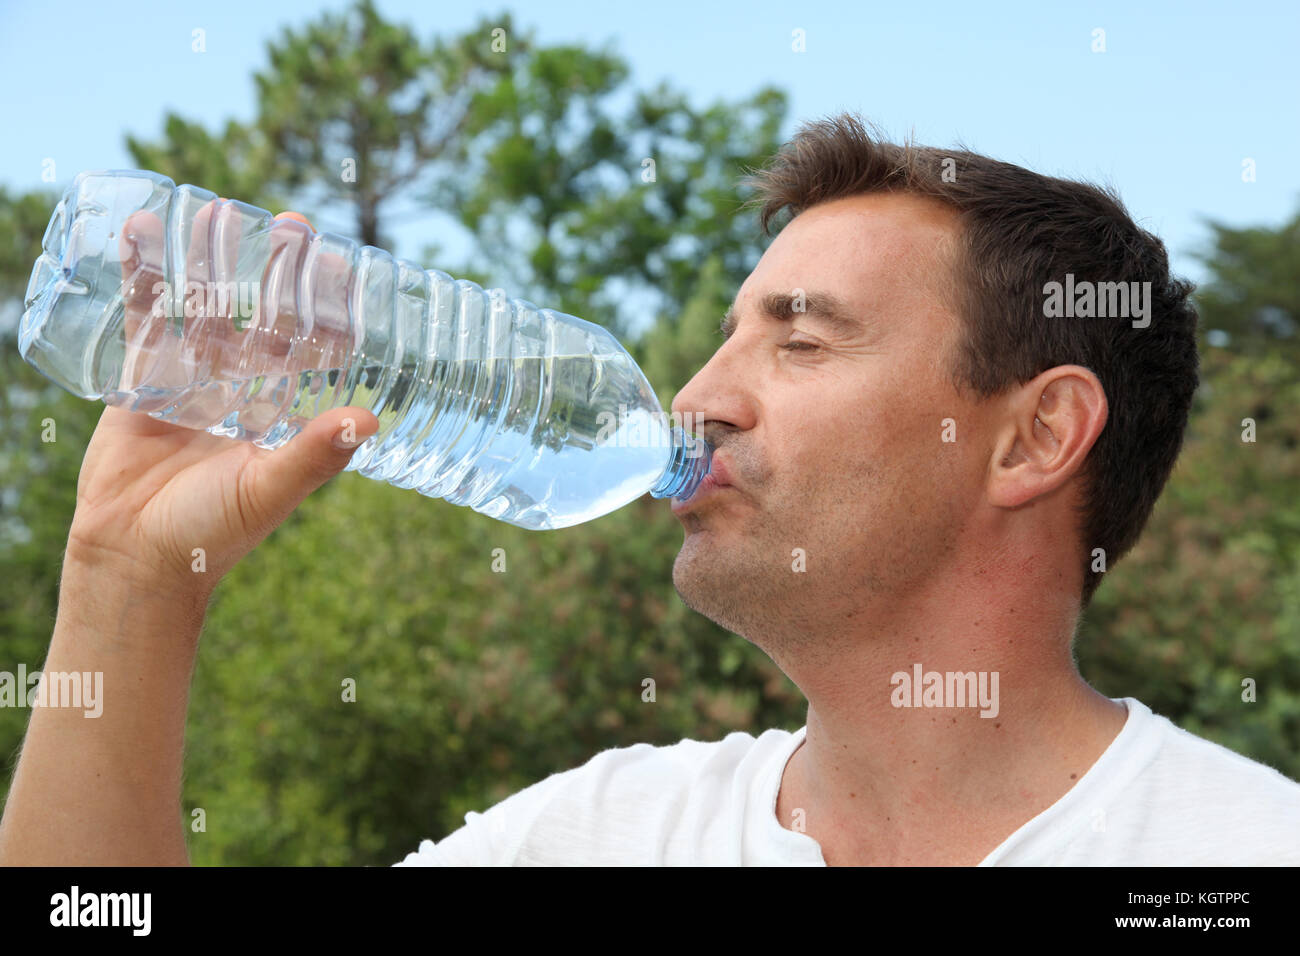 Man drinking water from bottle - Stock Image